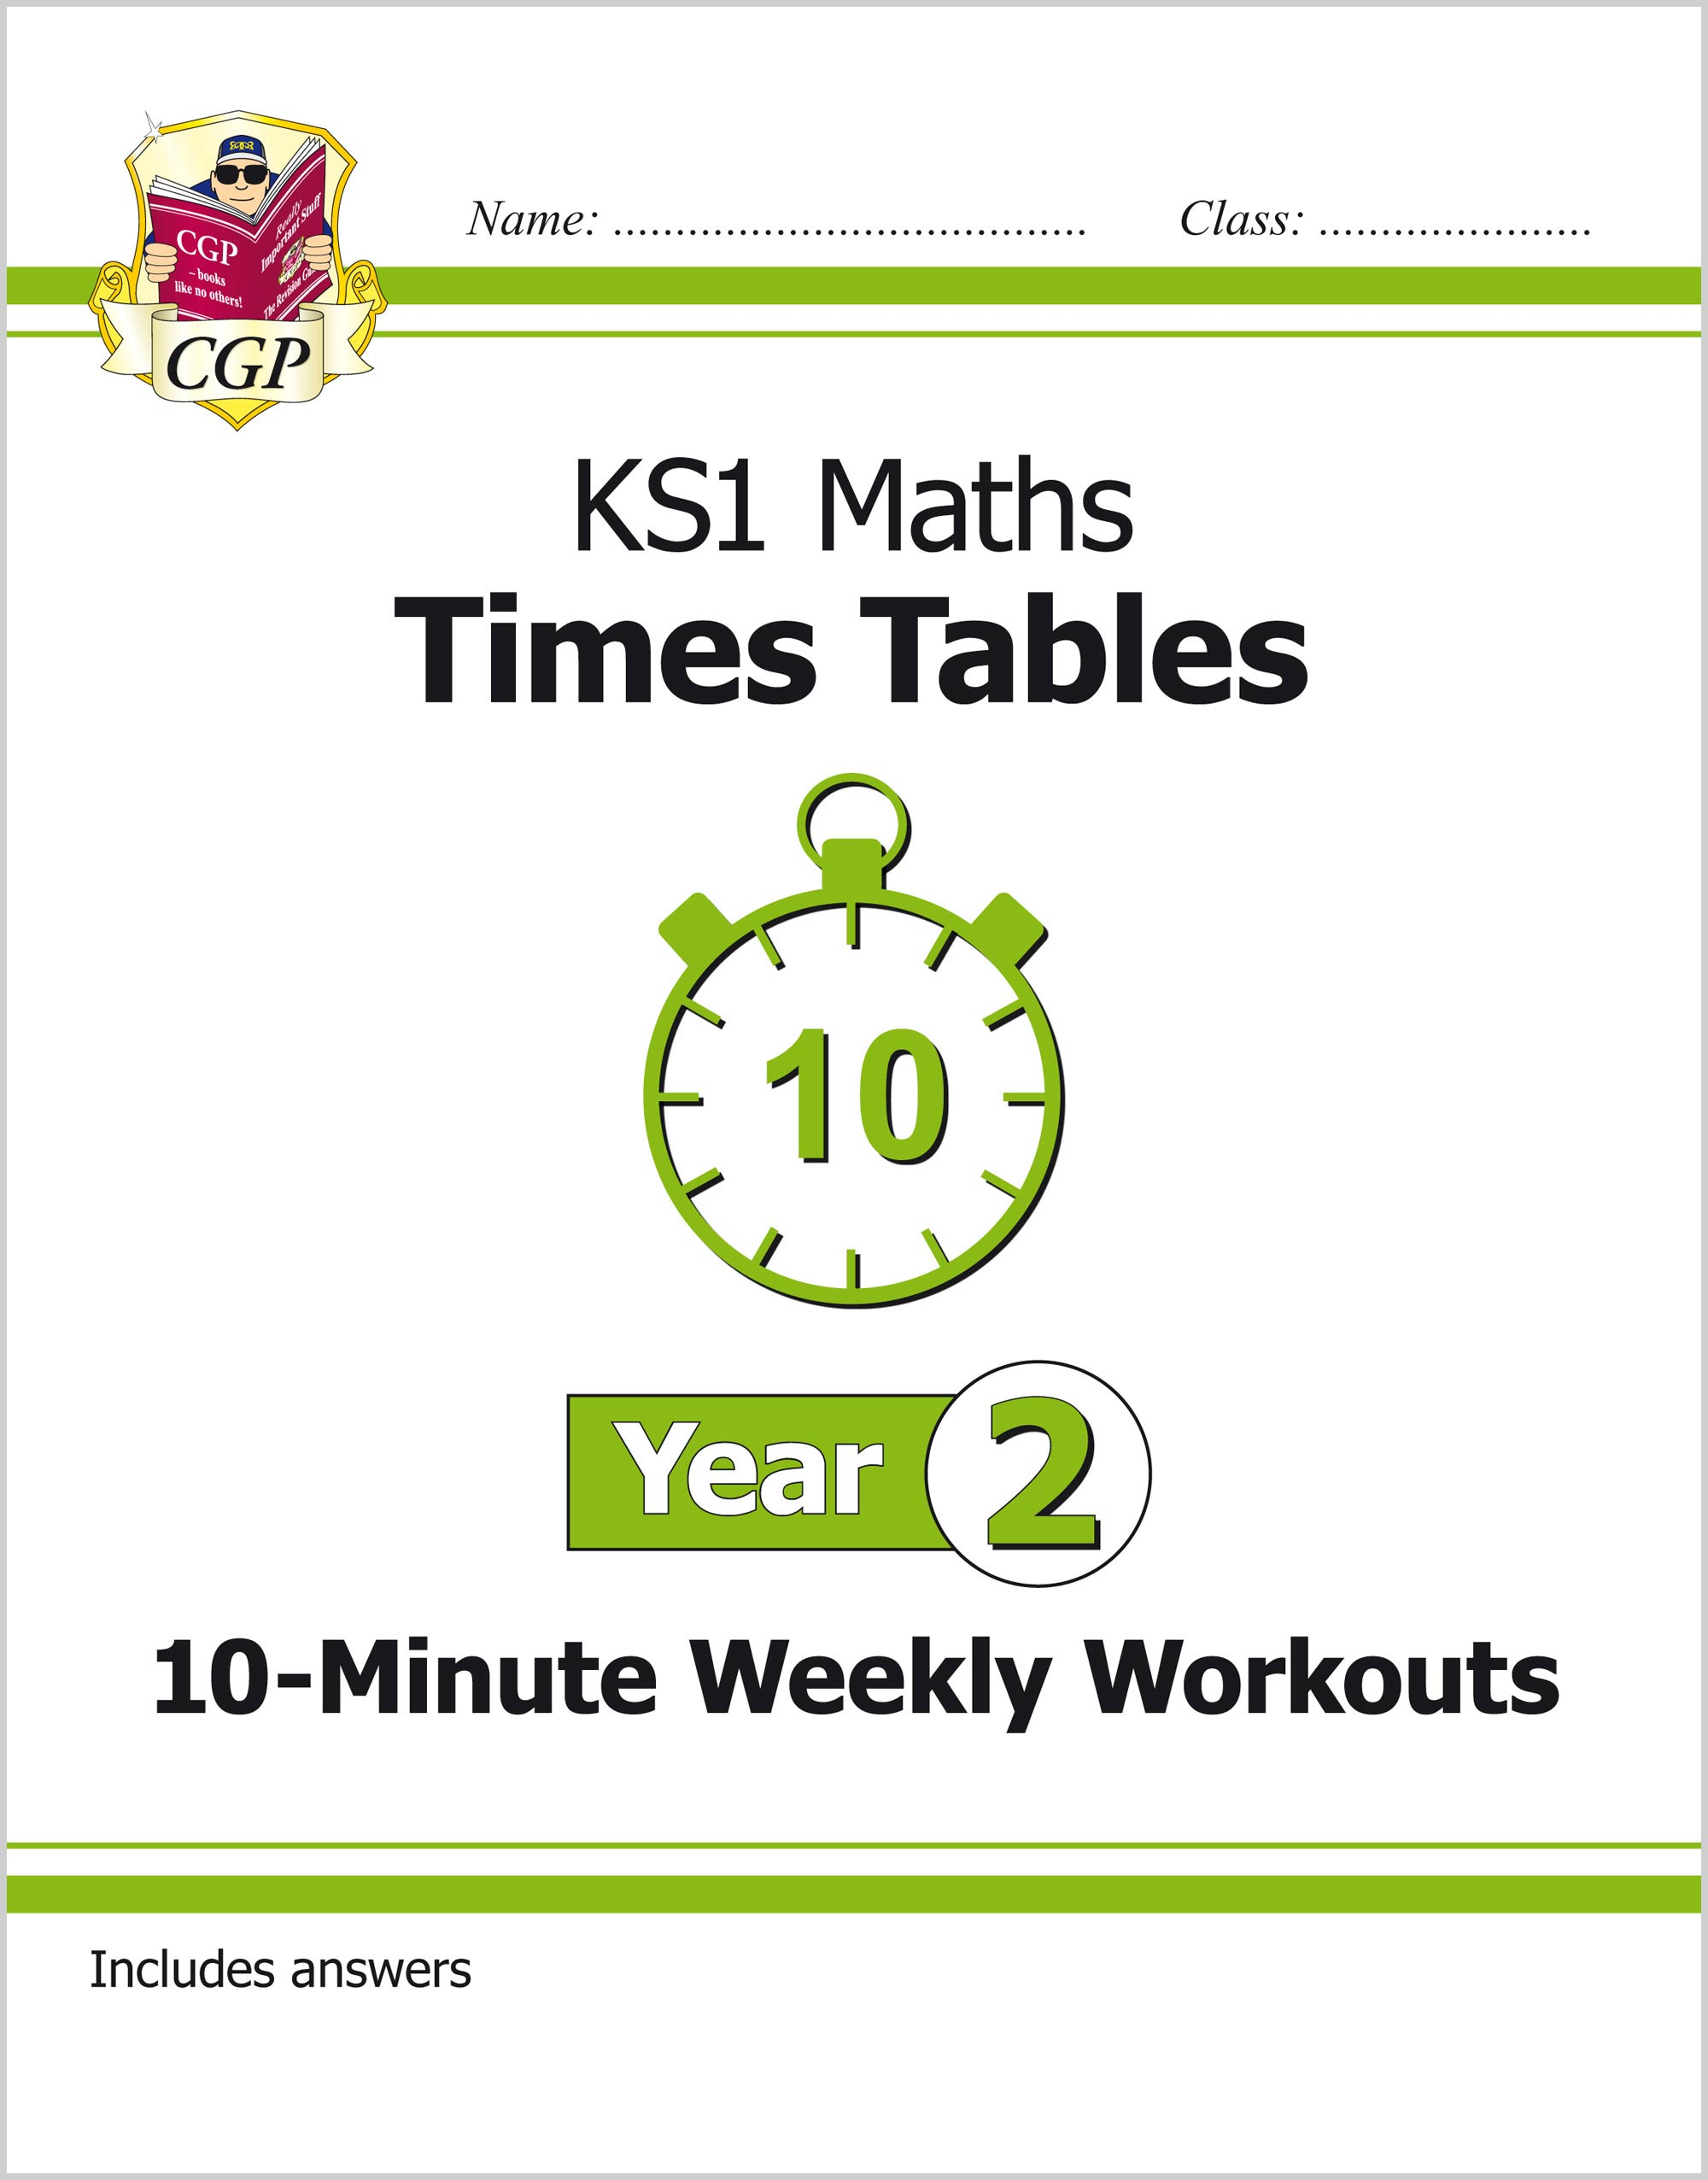 M2TXW11 - KS1 Maths: Times Tables 10-Minute Weekly Workouts - Year 2